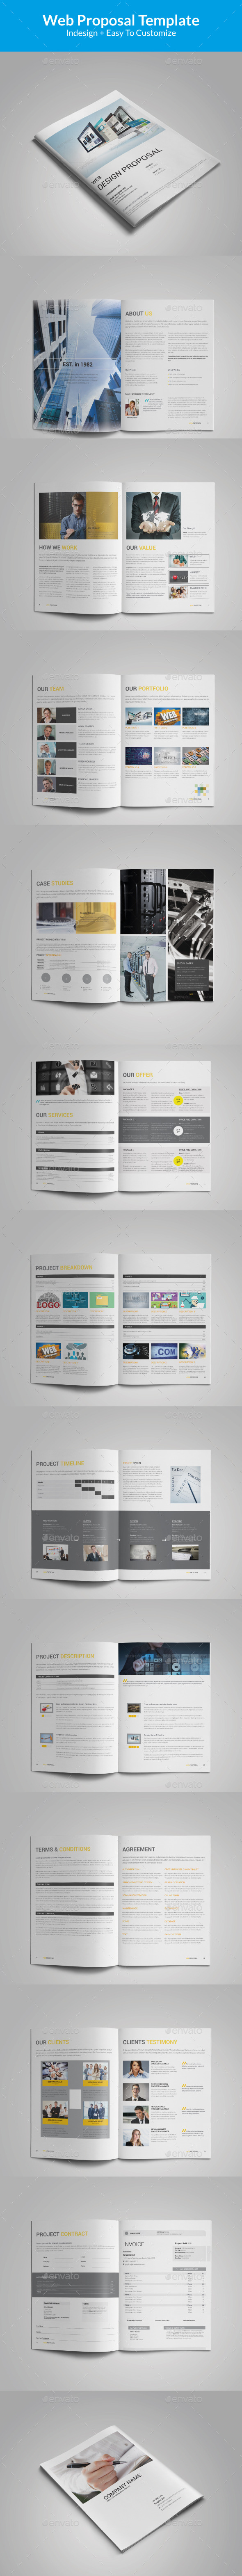 GraphicRiver Indesign Proposal Template 11872717